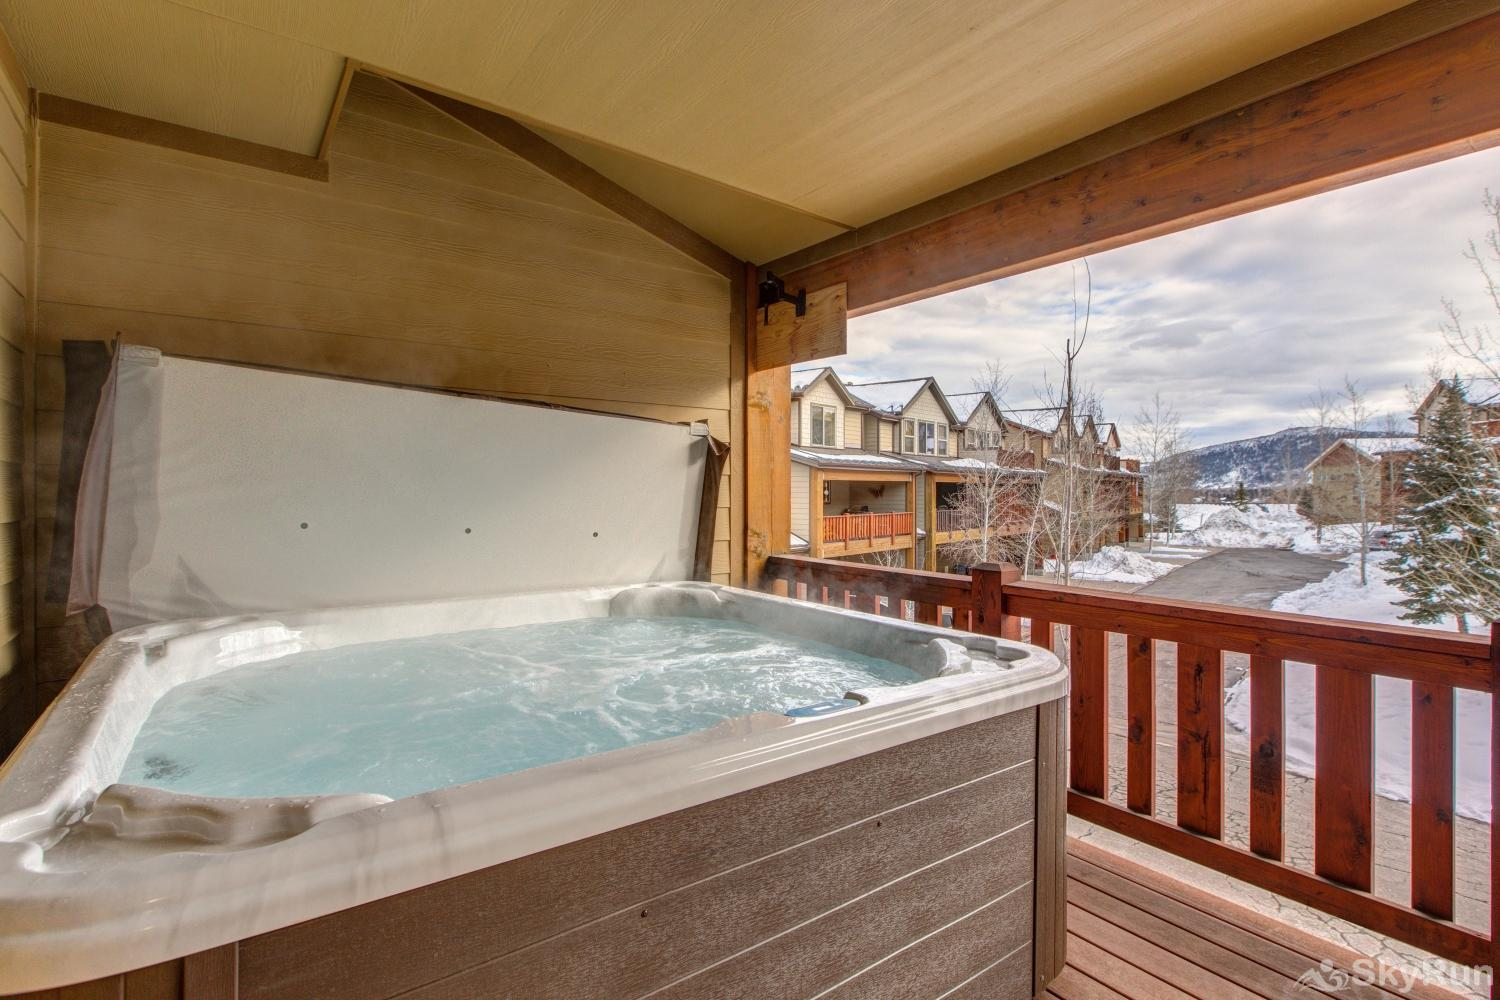 Luge Lane Luxury 5452 Relaxing Private Hot Tub